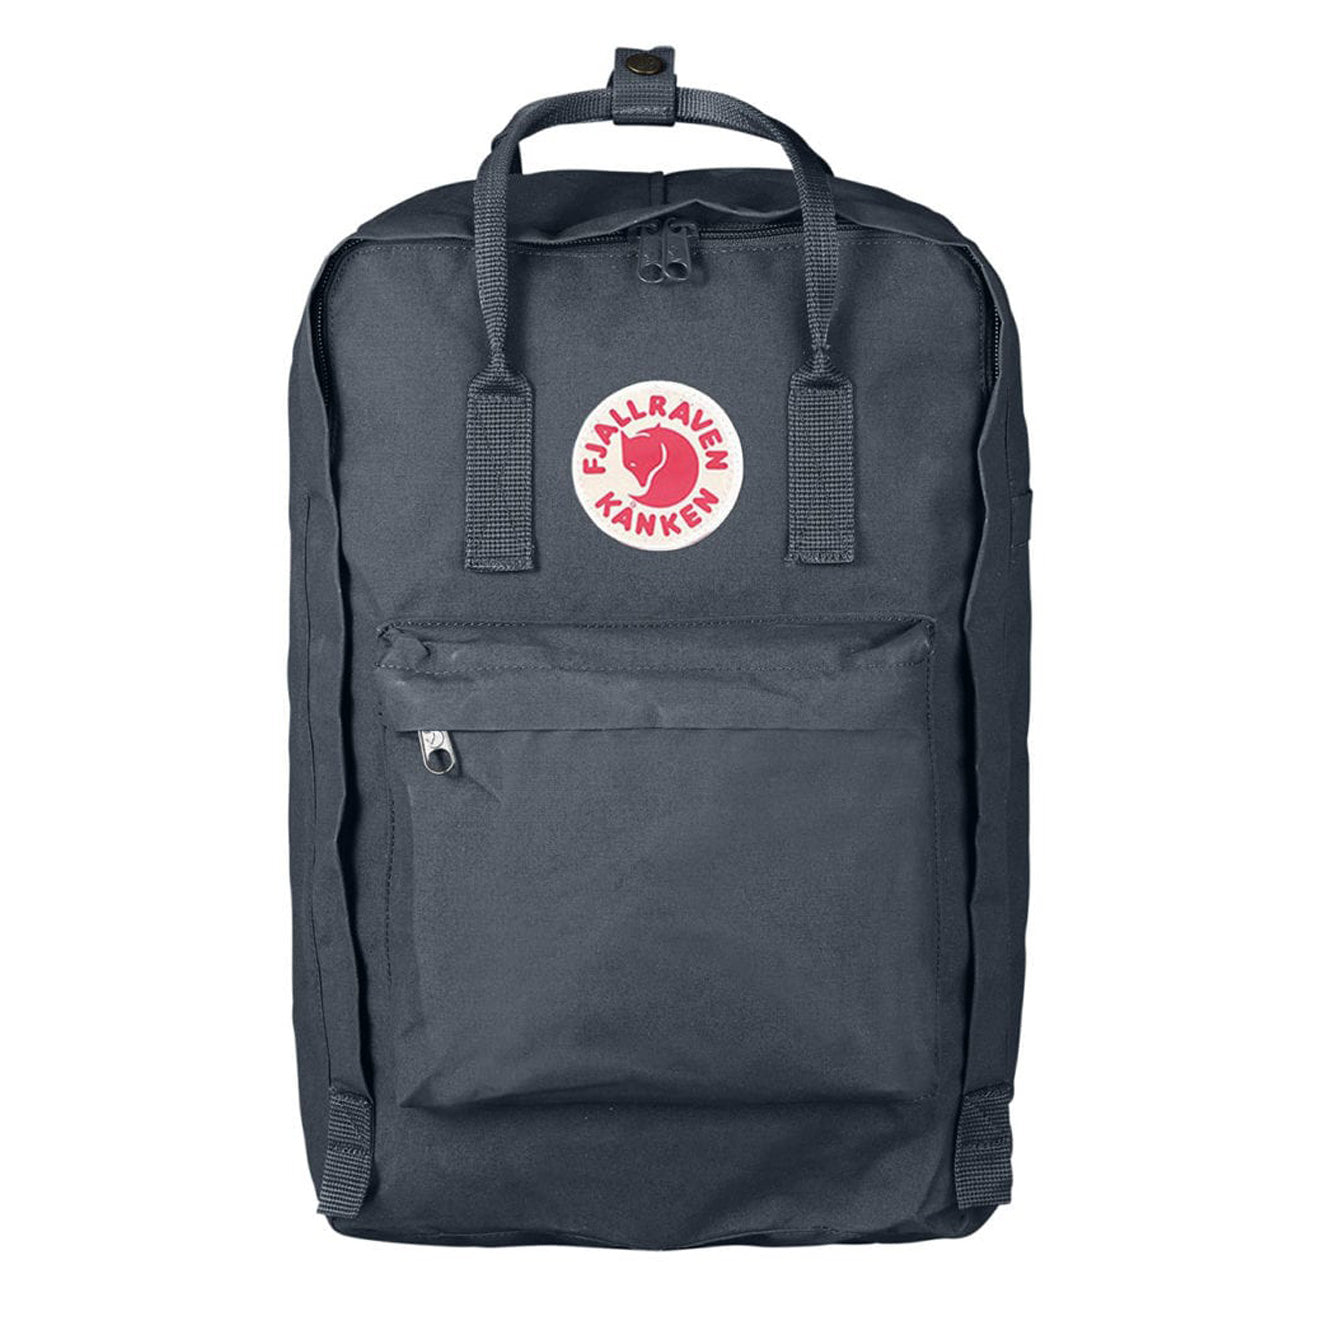 fjallraven kanken laptop